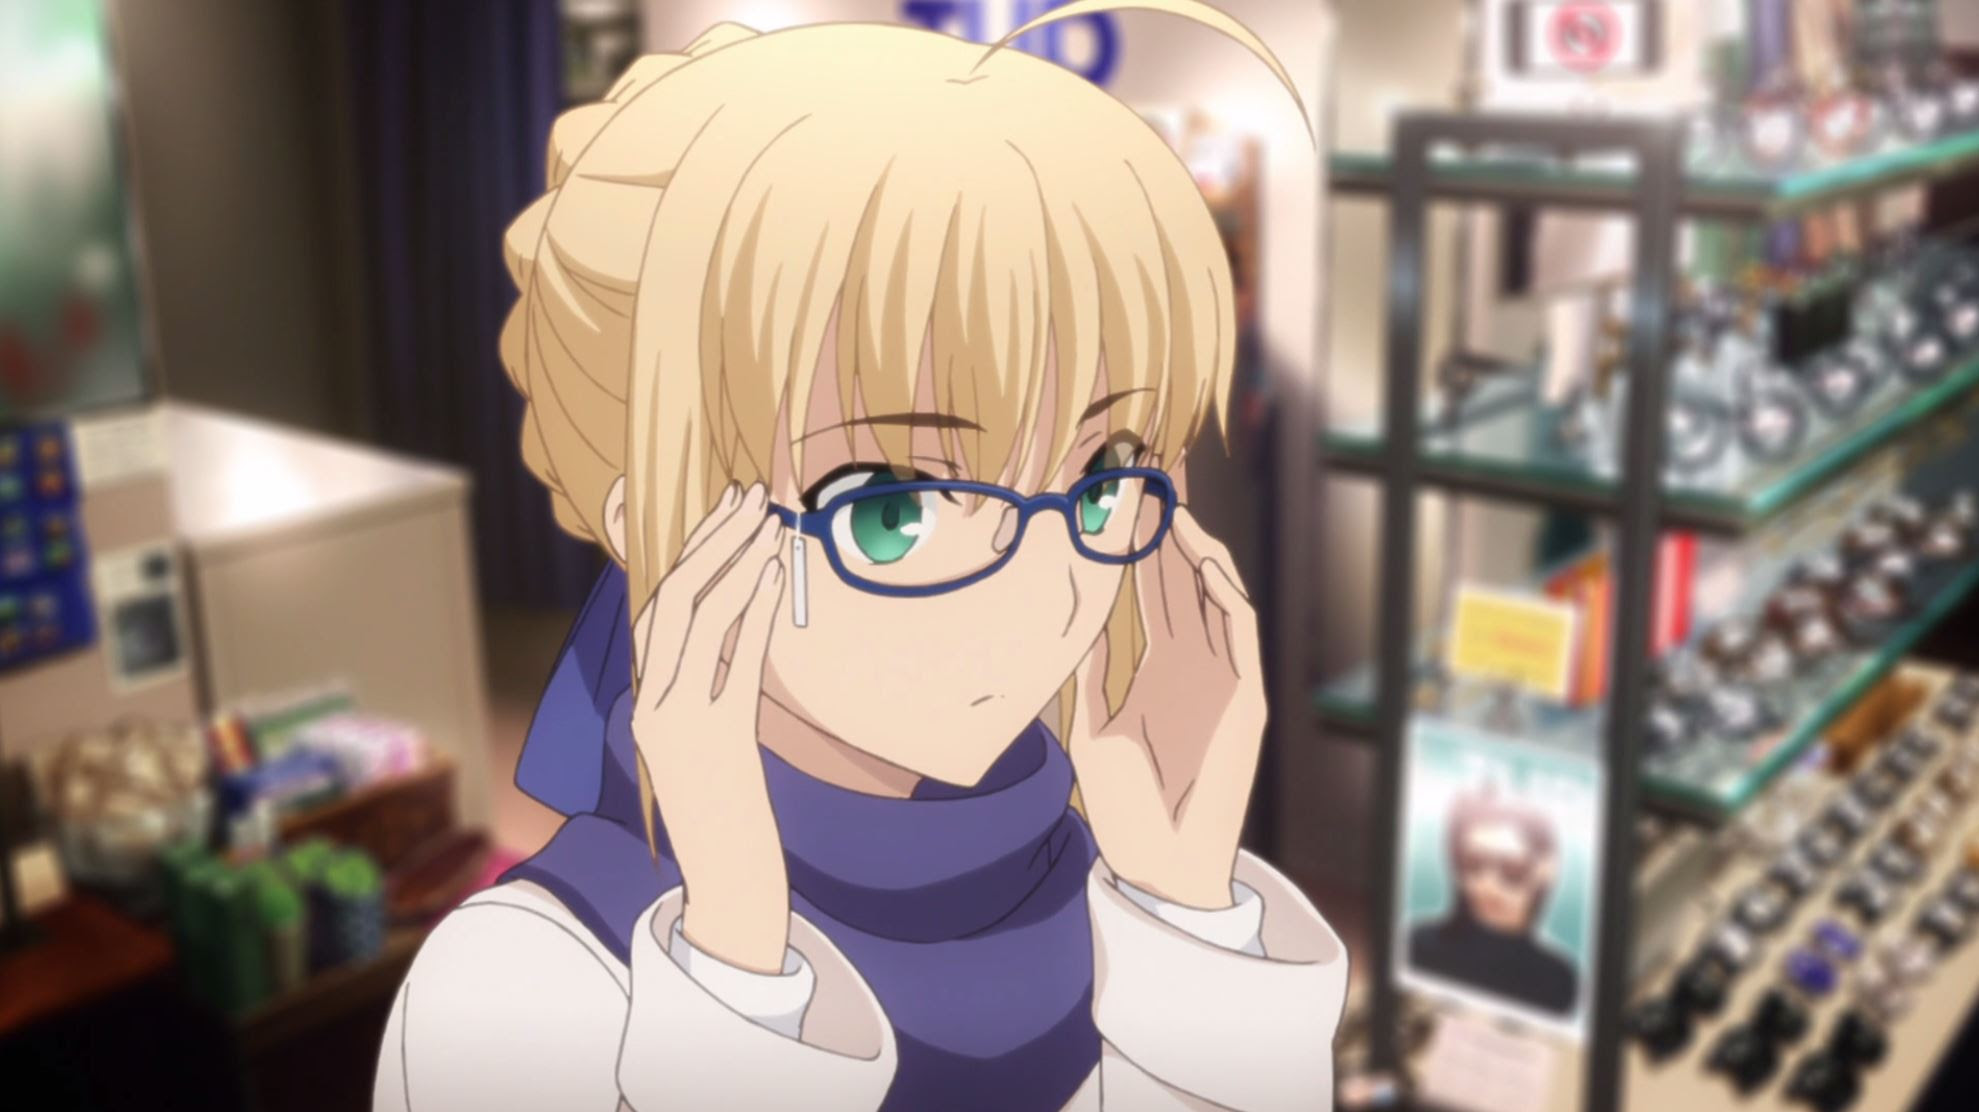 Animegane sounds like the perfect place to buy anime glasses screenshot